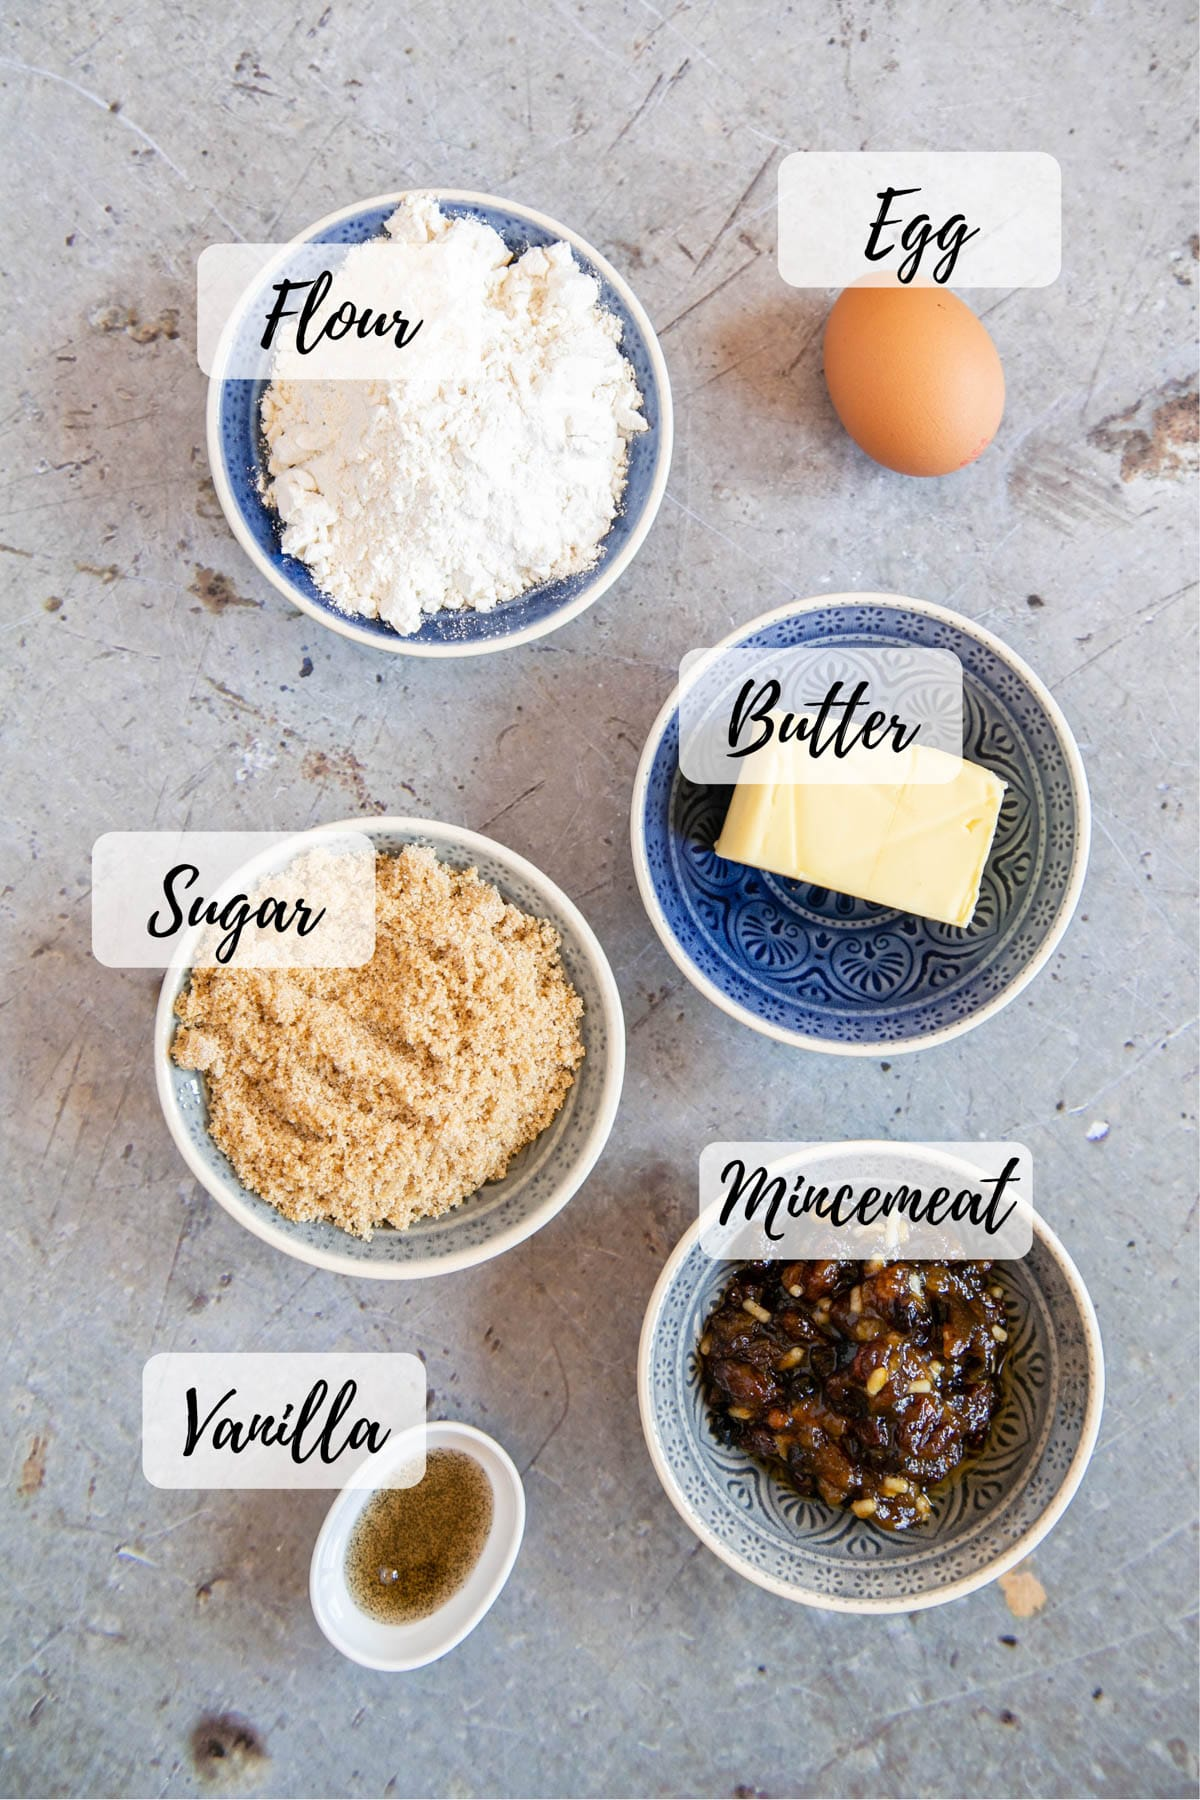 Ingredients collected and ready to use - flour, egg, butter, sugar, vanilla and mincemeat